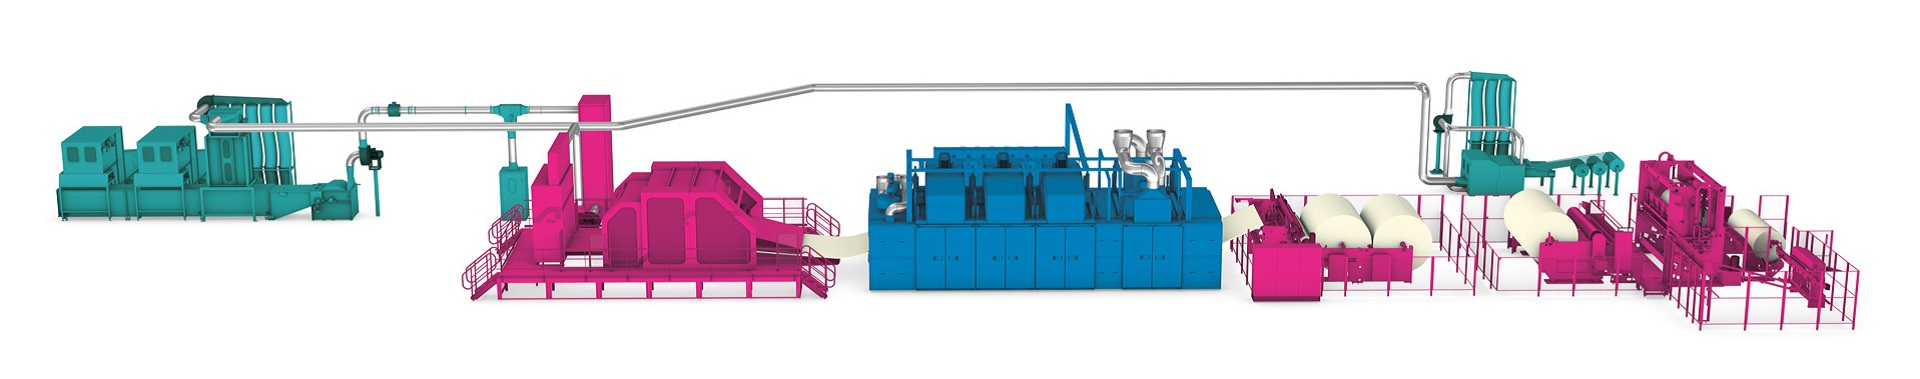 Design and supply of complete production lines for different nonwoven applications